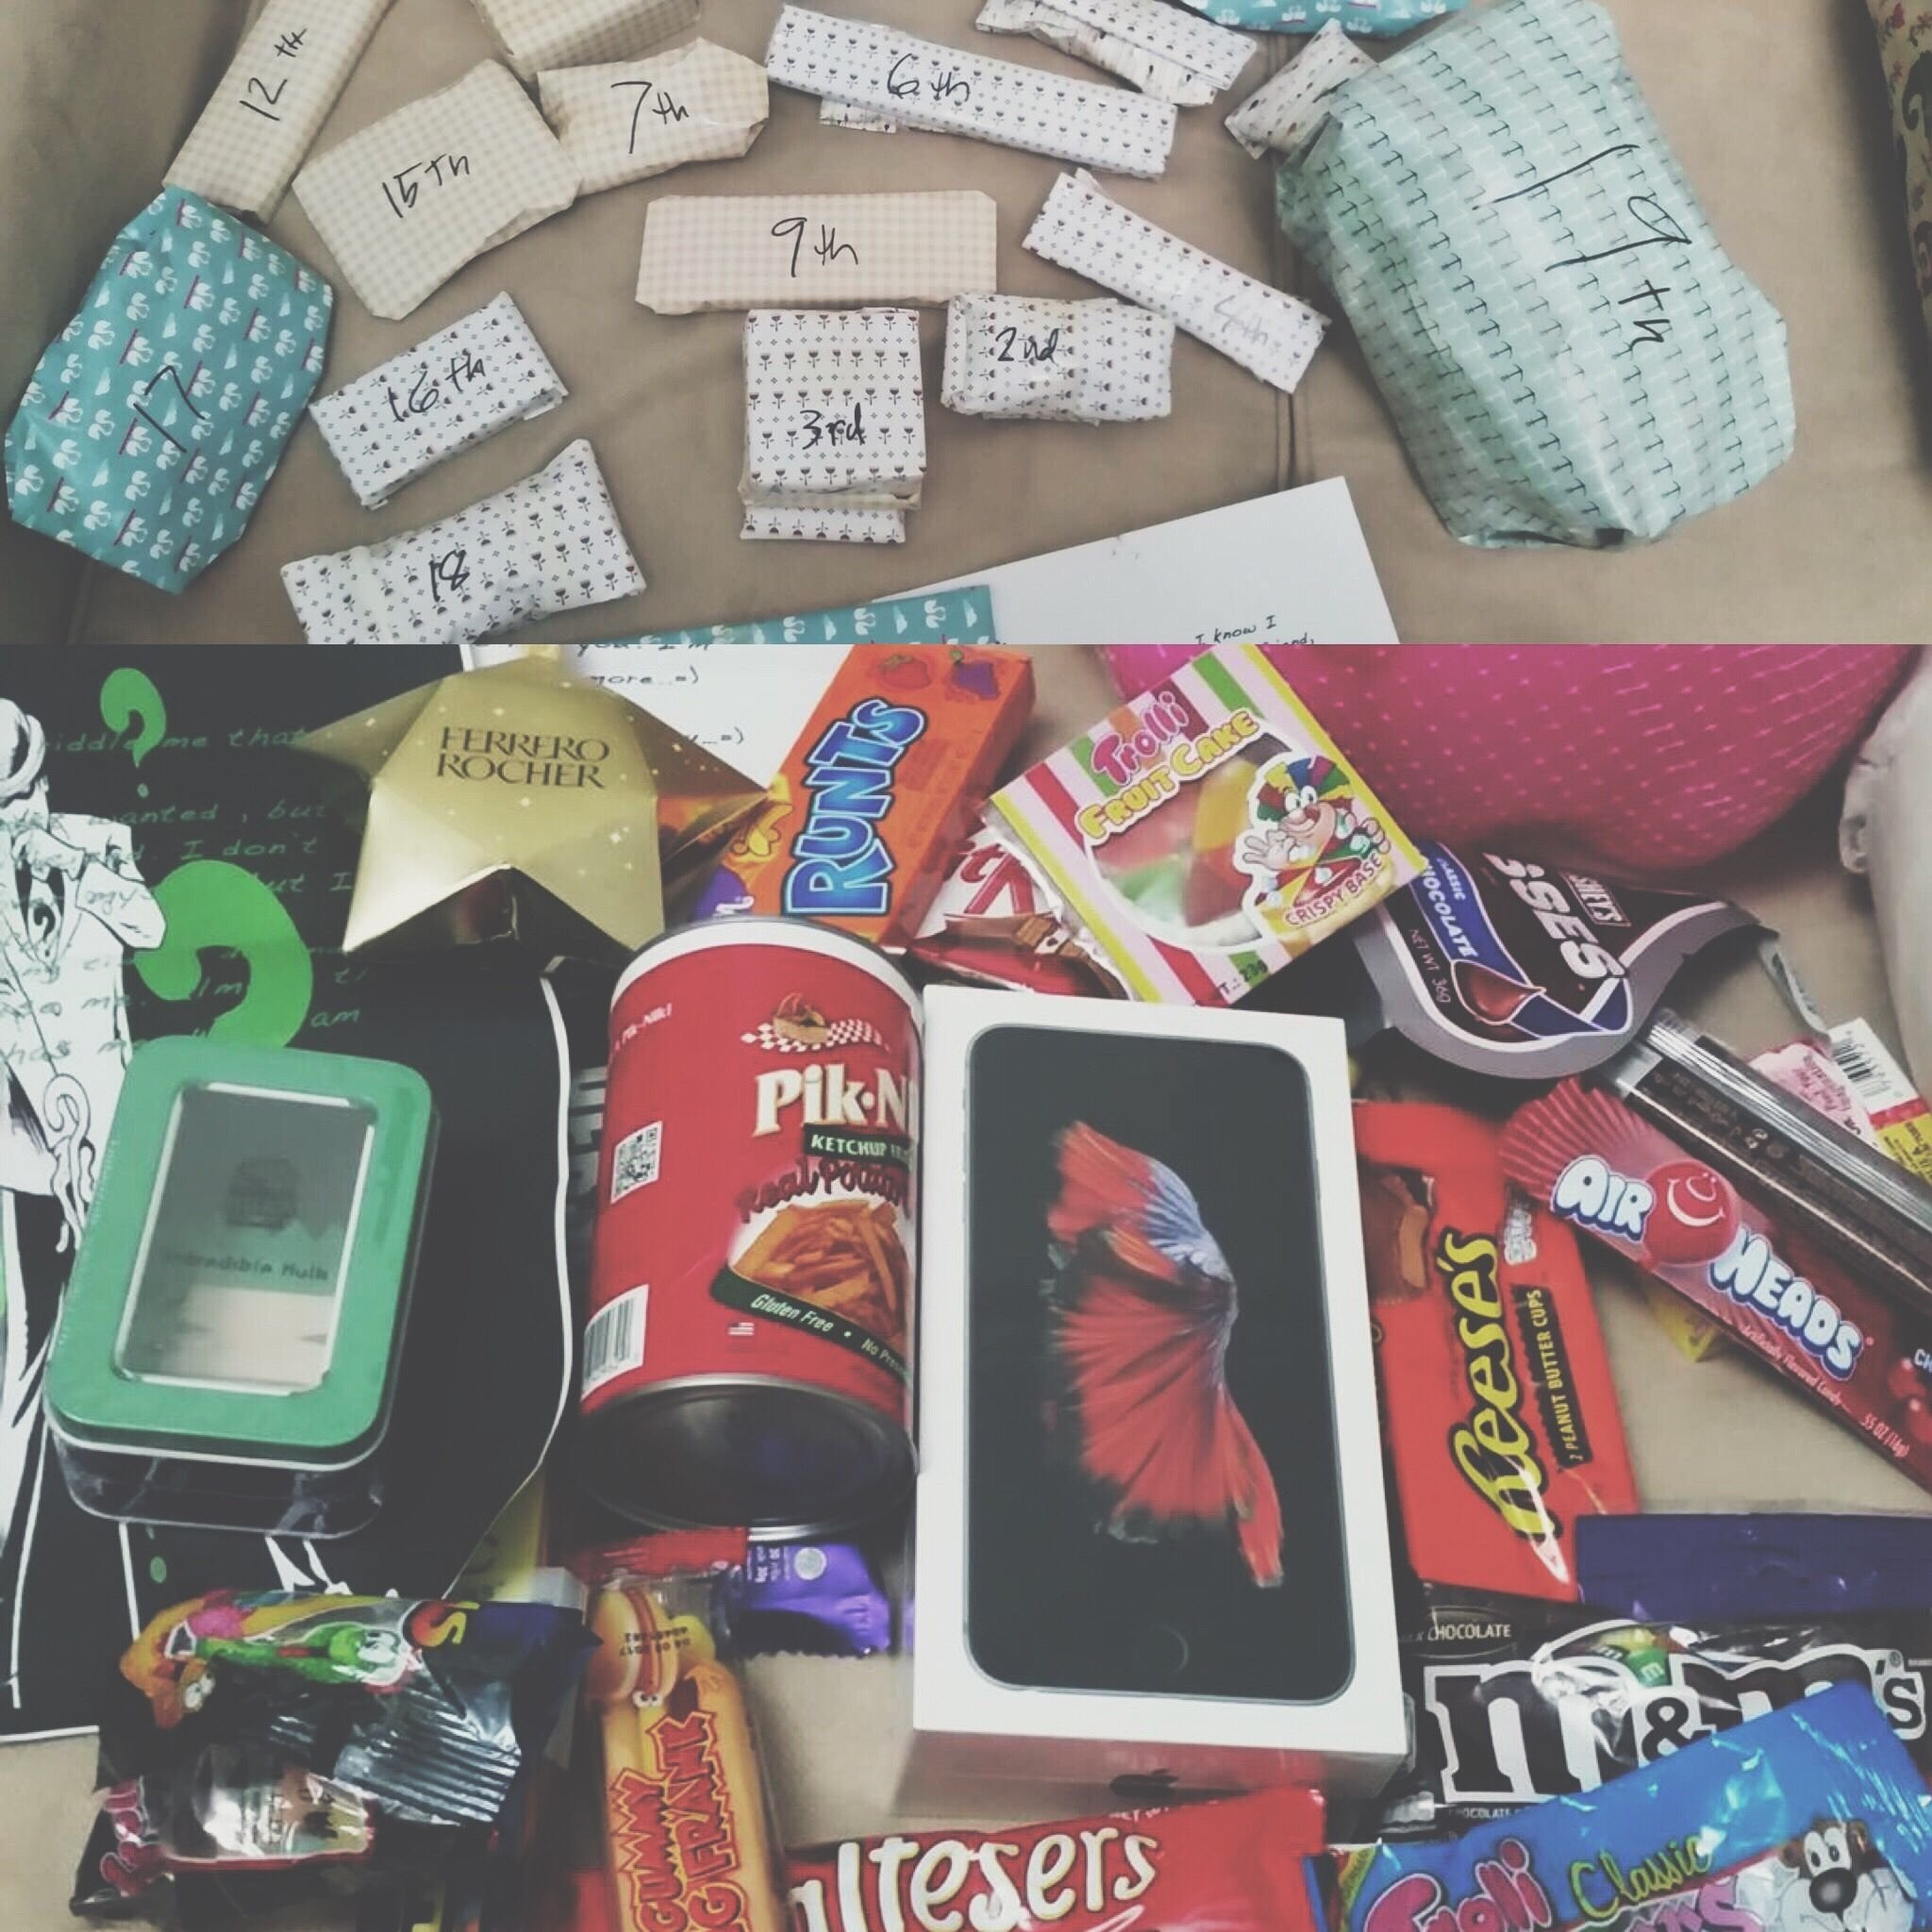 10 Awesome Fun Birthday Ideas For Girlfriend my boyfriends birthday surprise 19 gifts to open a riddle to 1 2020